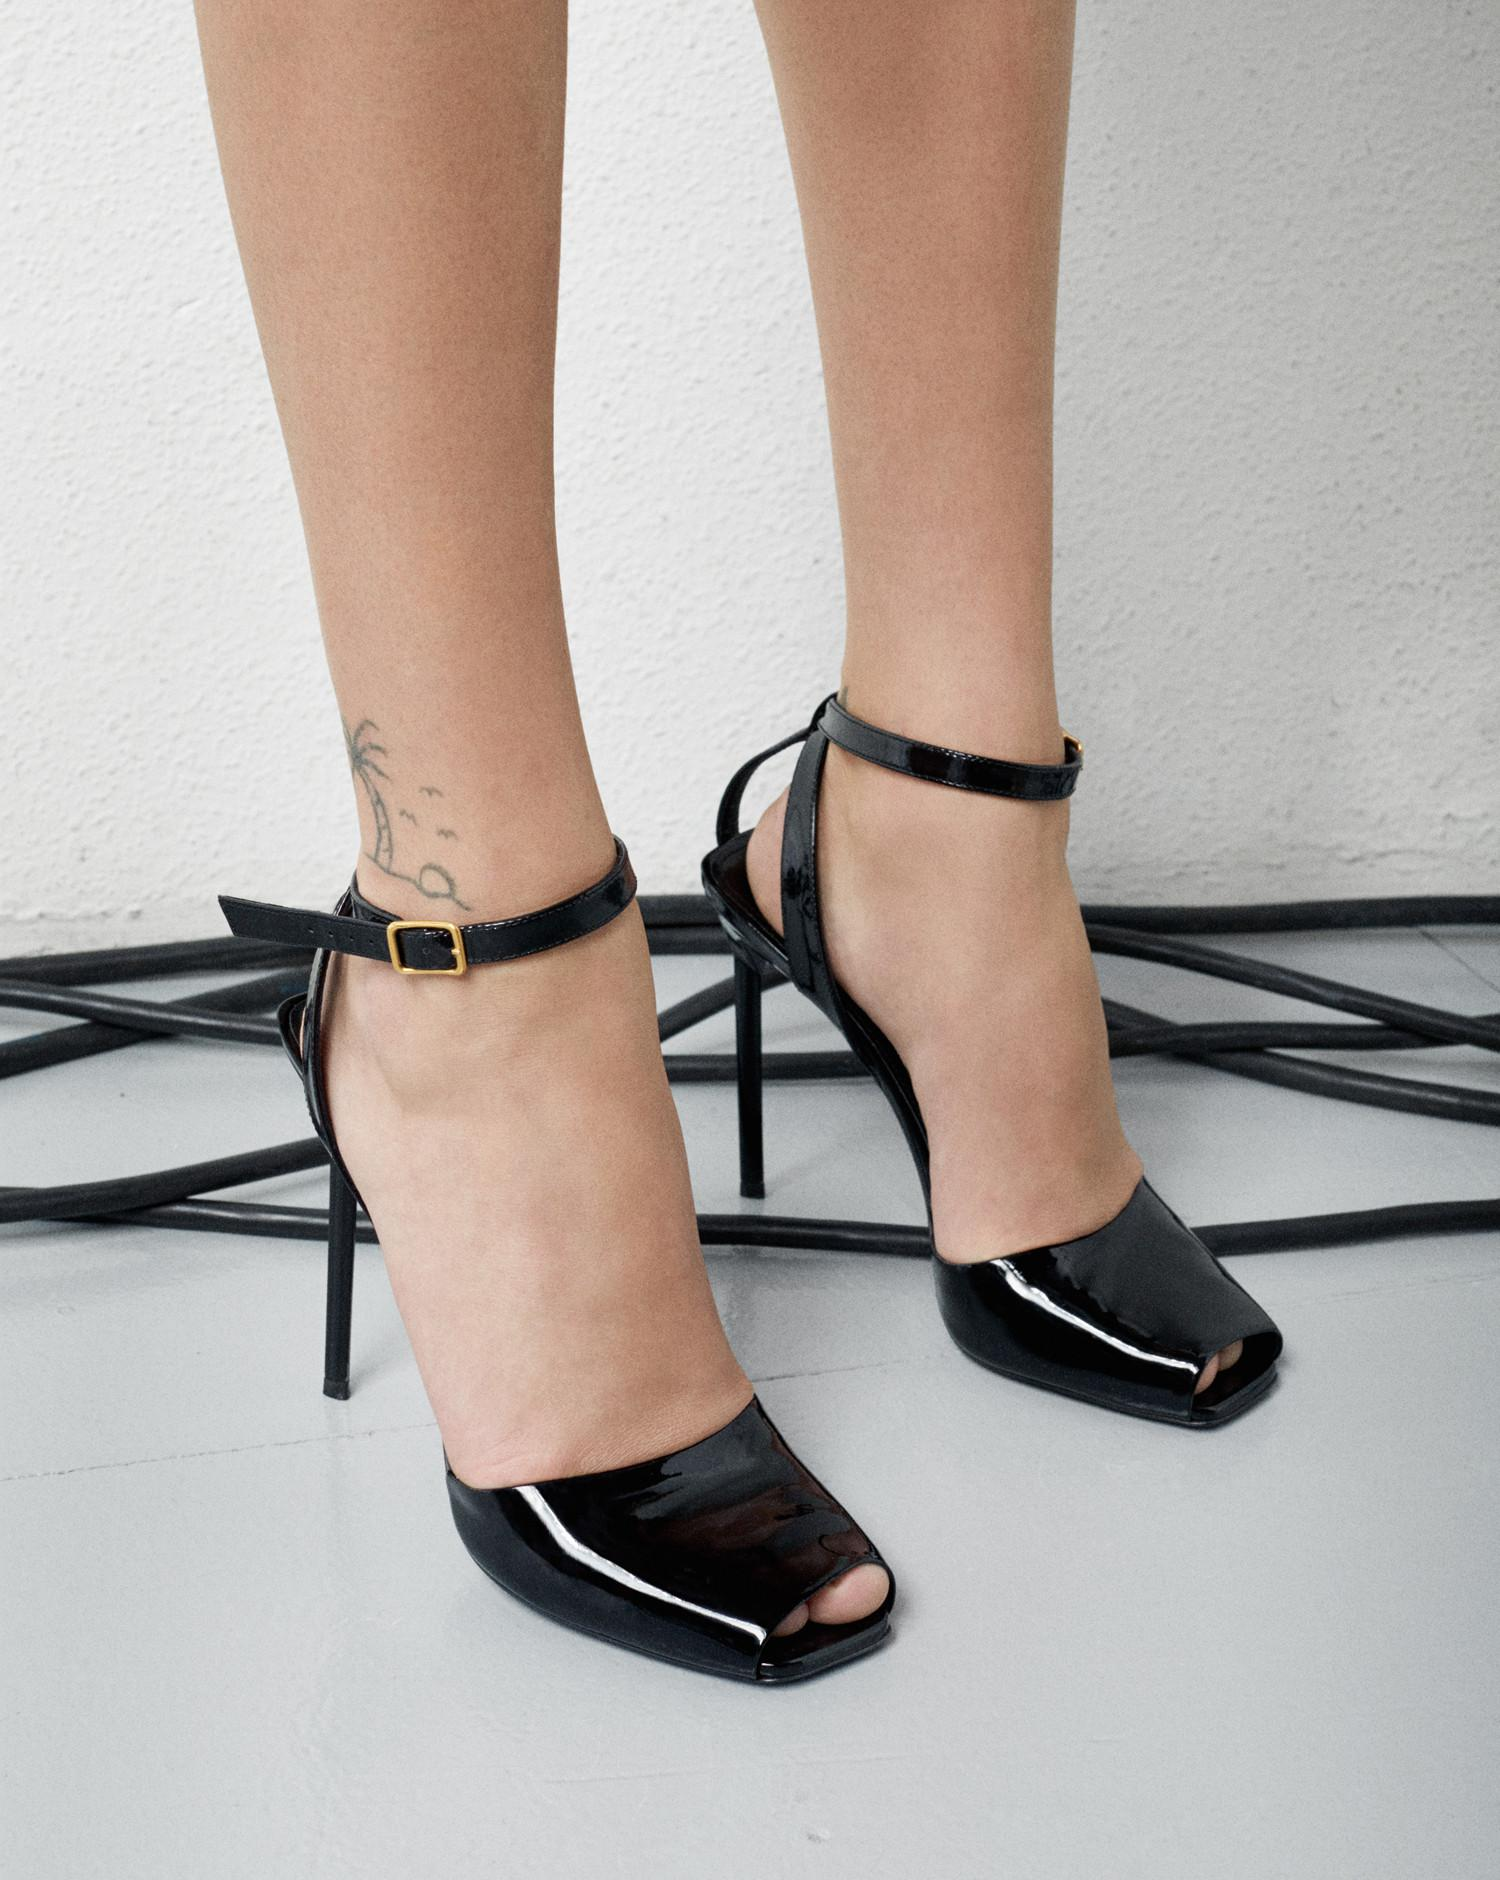 742ad391b538 Lyst - Saint Laurent Edie 110 Peep Toe Sandal In Black Patent ...